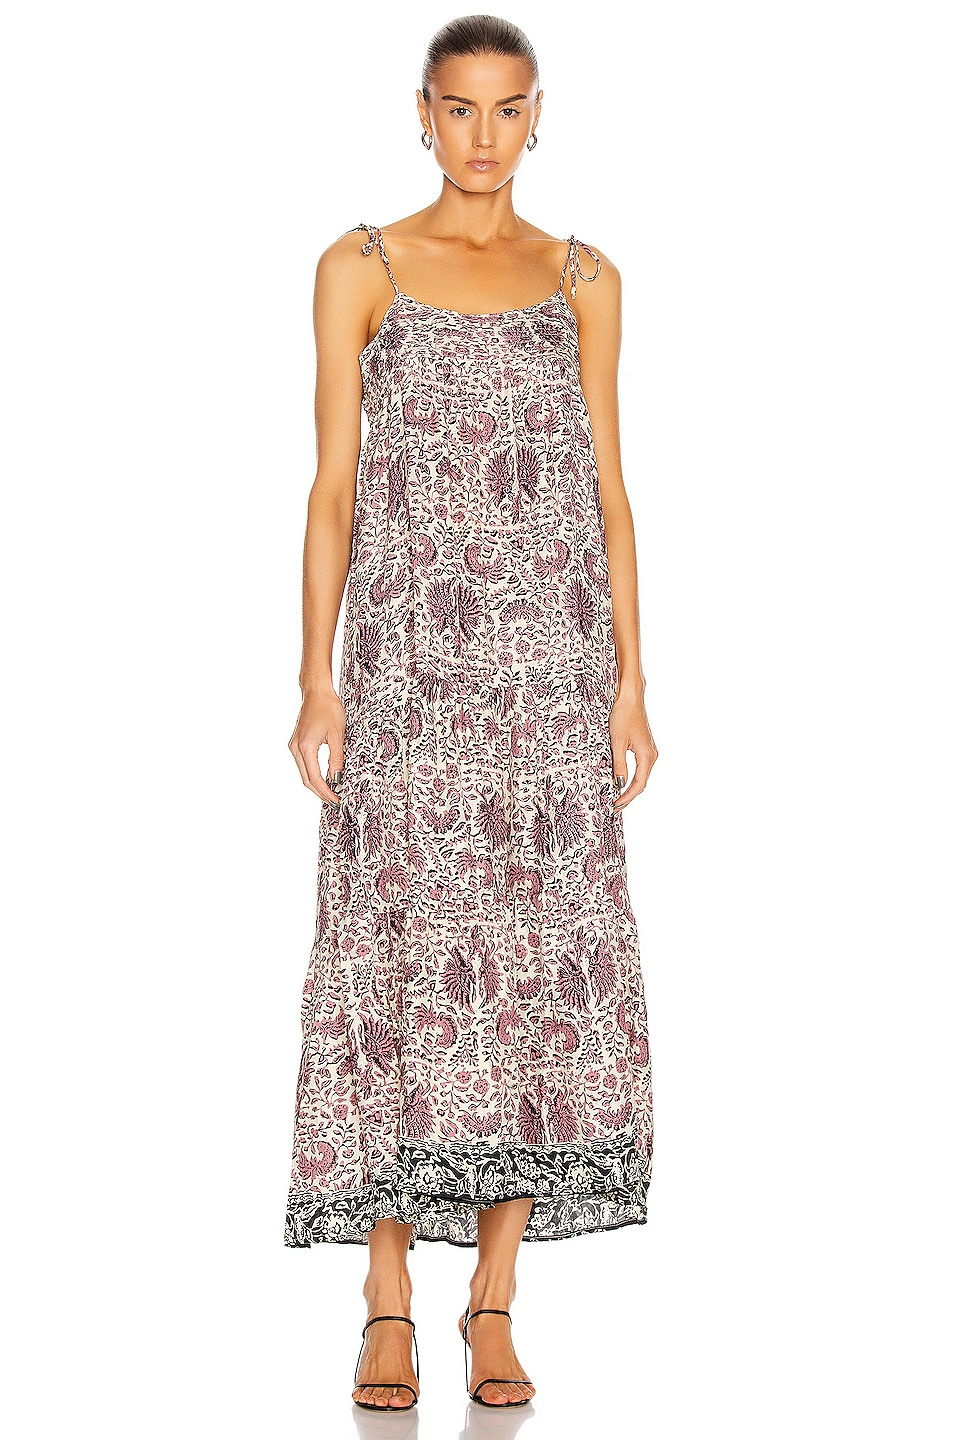 Image 1 of Natalie Martin Melanie Dress in Wing Print Santorini Fig